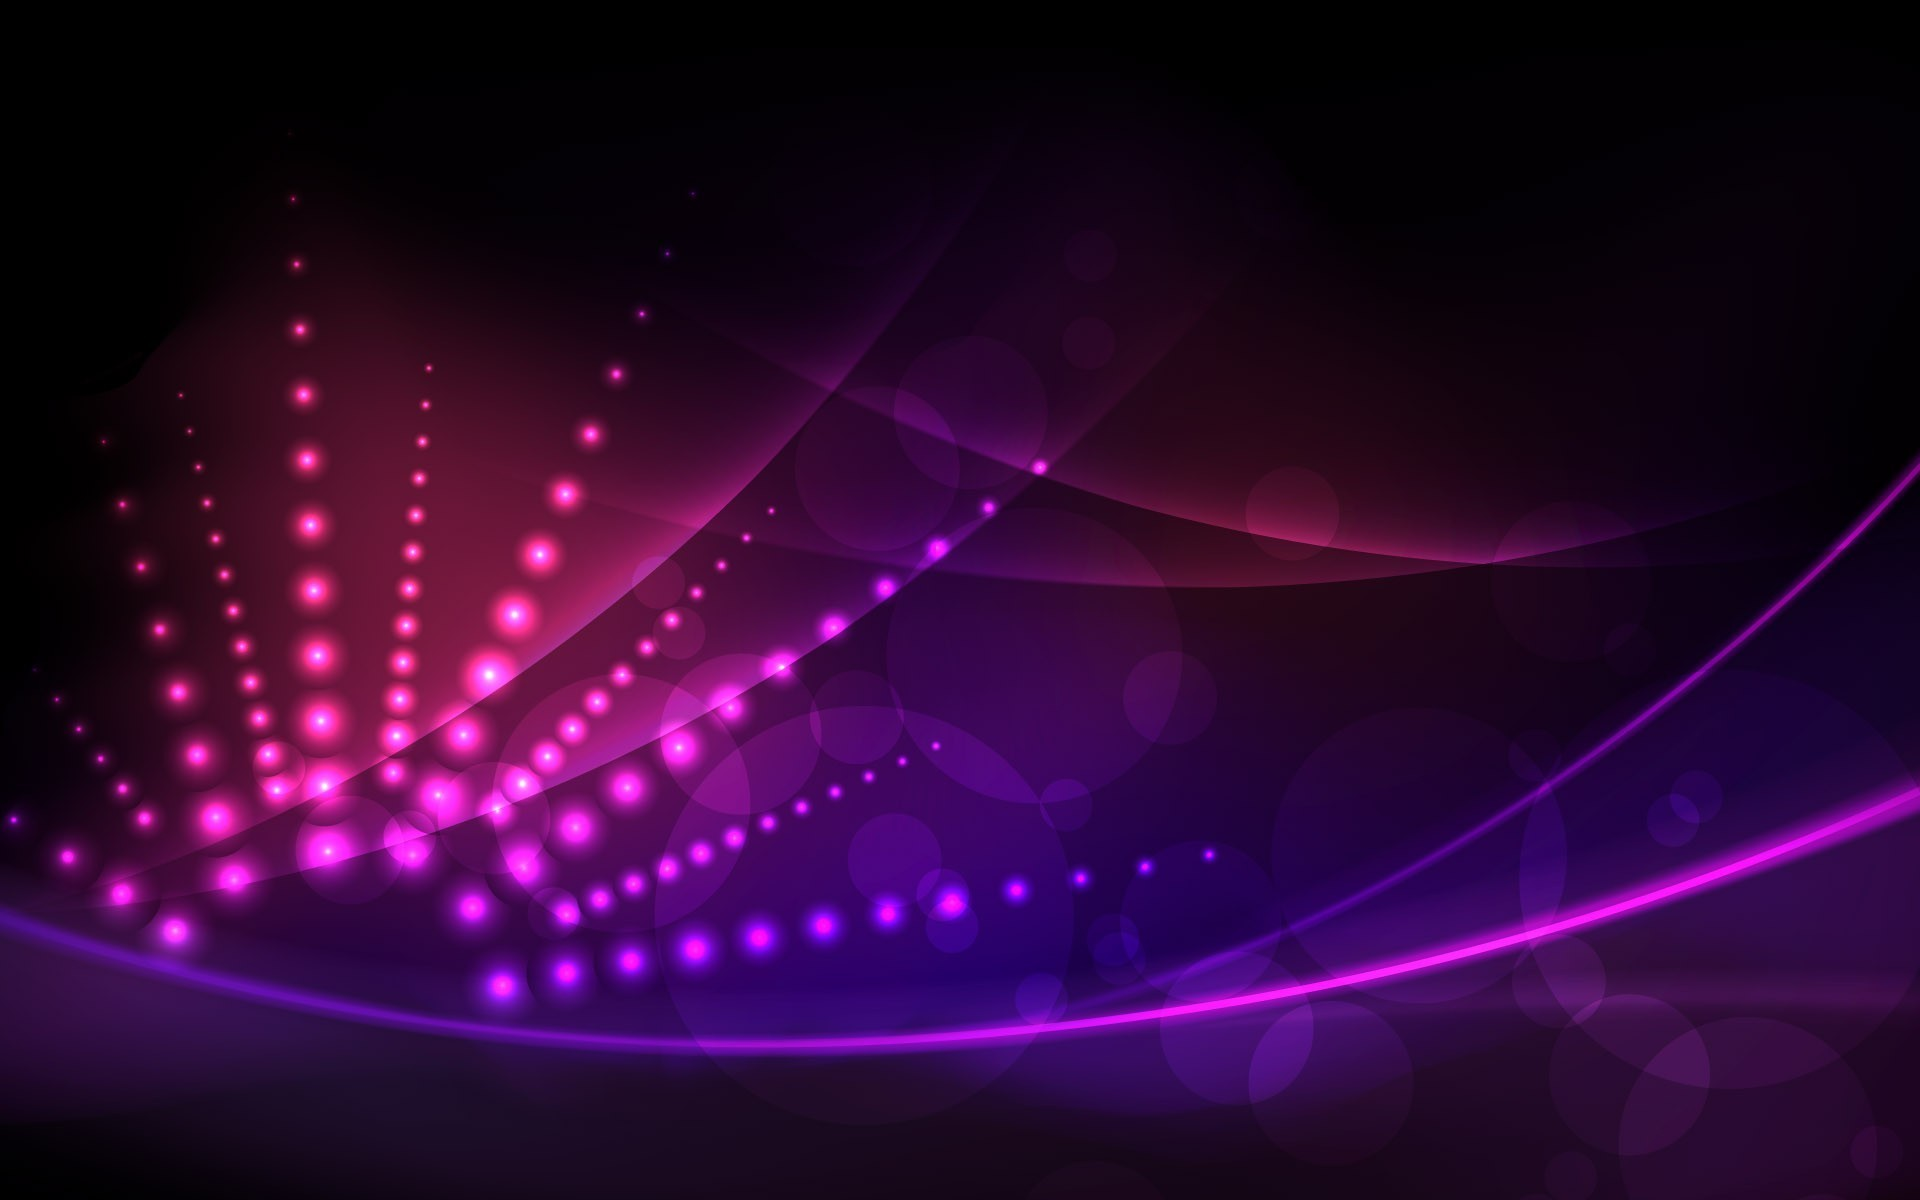 abstract lights pink lines HD Wallpaper